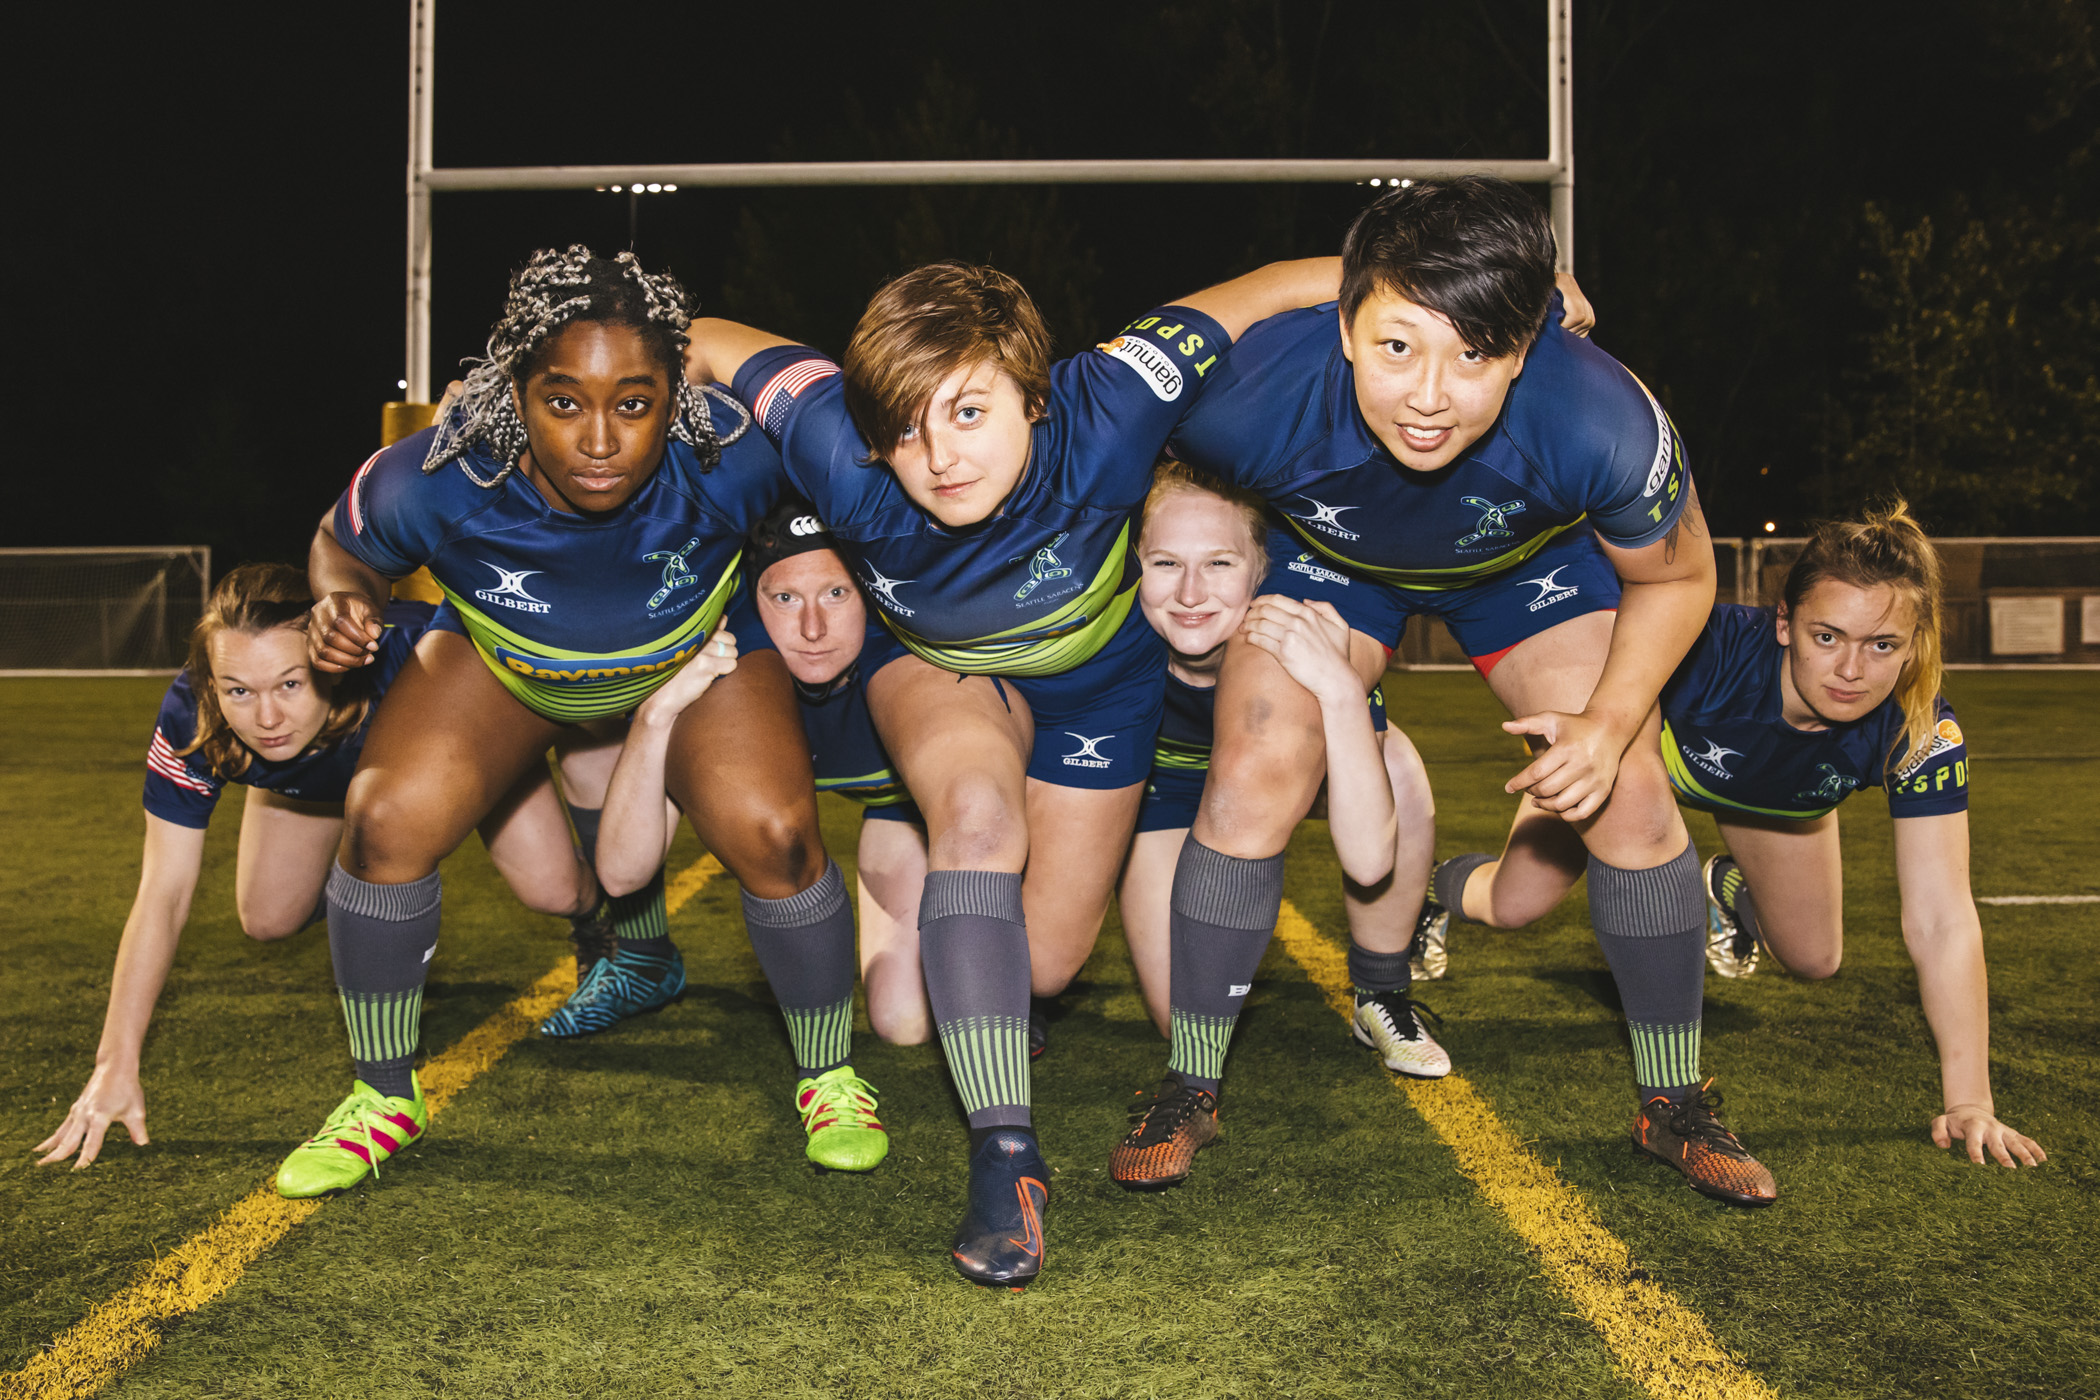 LOOK AT THOSE GALS SCRUM DOWN! (Image: Sunita Martini / Seattle Refined).